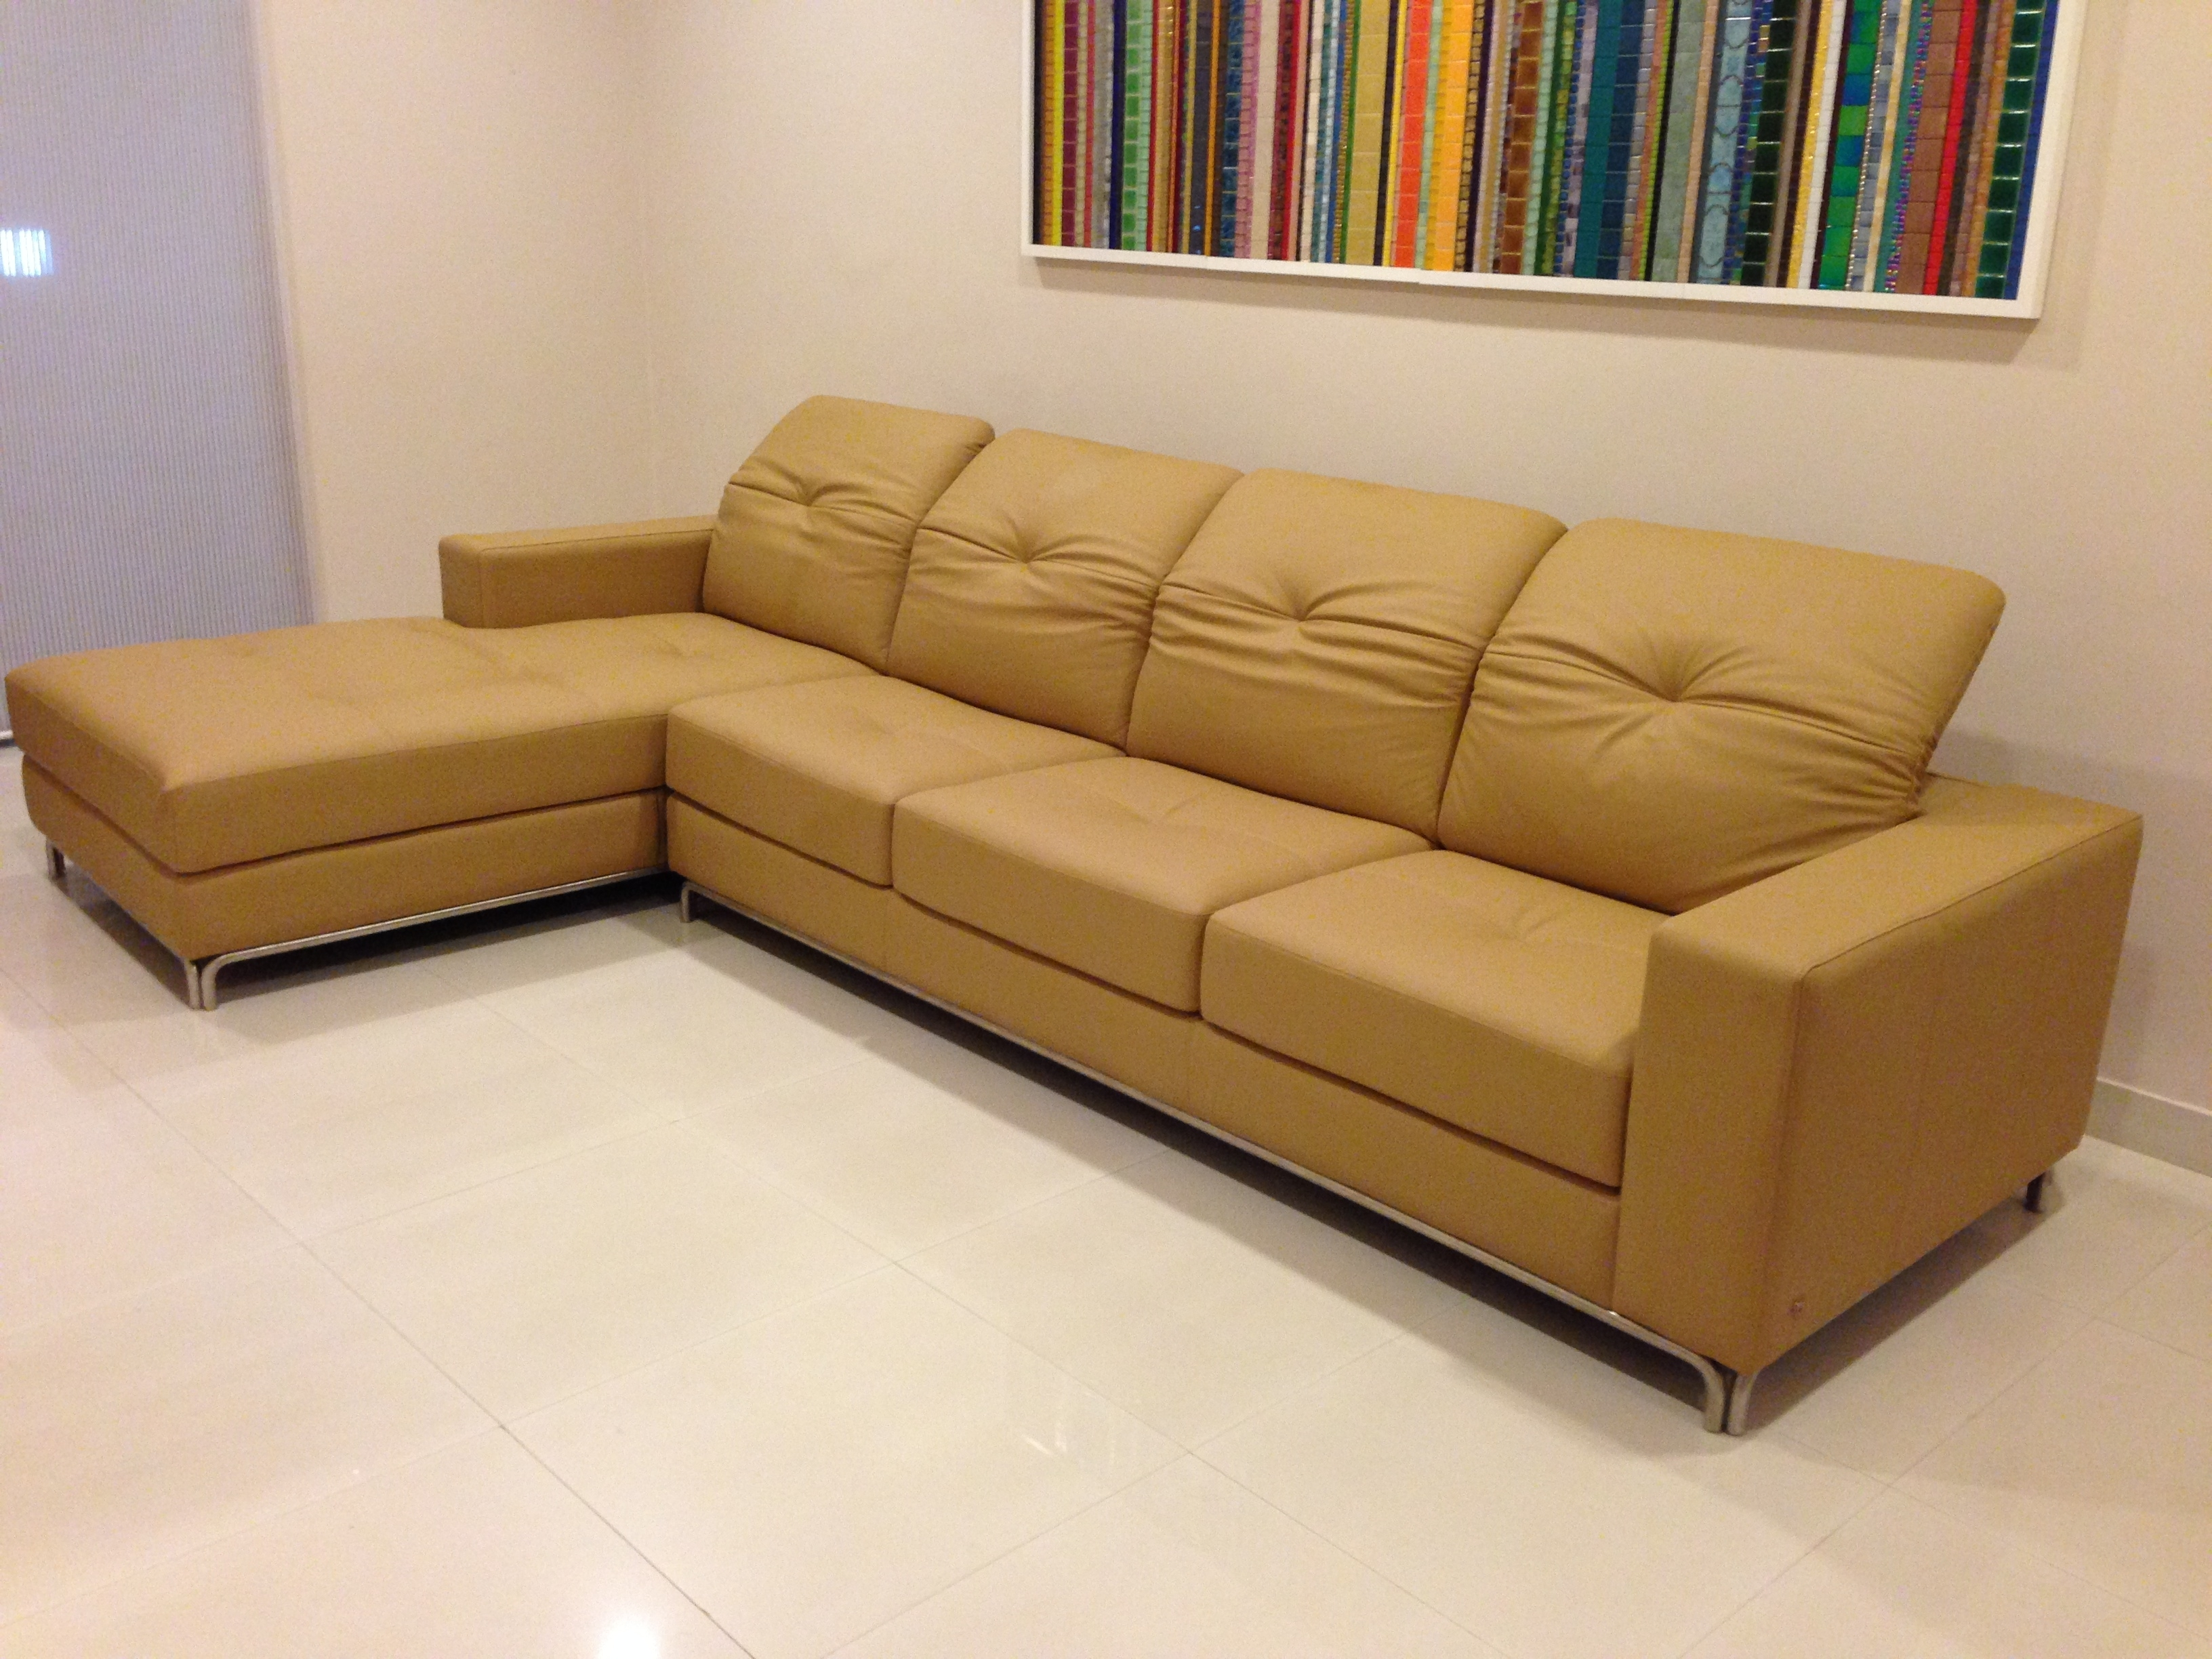 Karlsson Leather: Custom Leather Sofas, Recliners, Car Seat Covers Inside Sectional Sofas At Bangalore (Image 4 of 10)